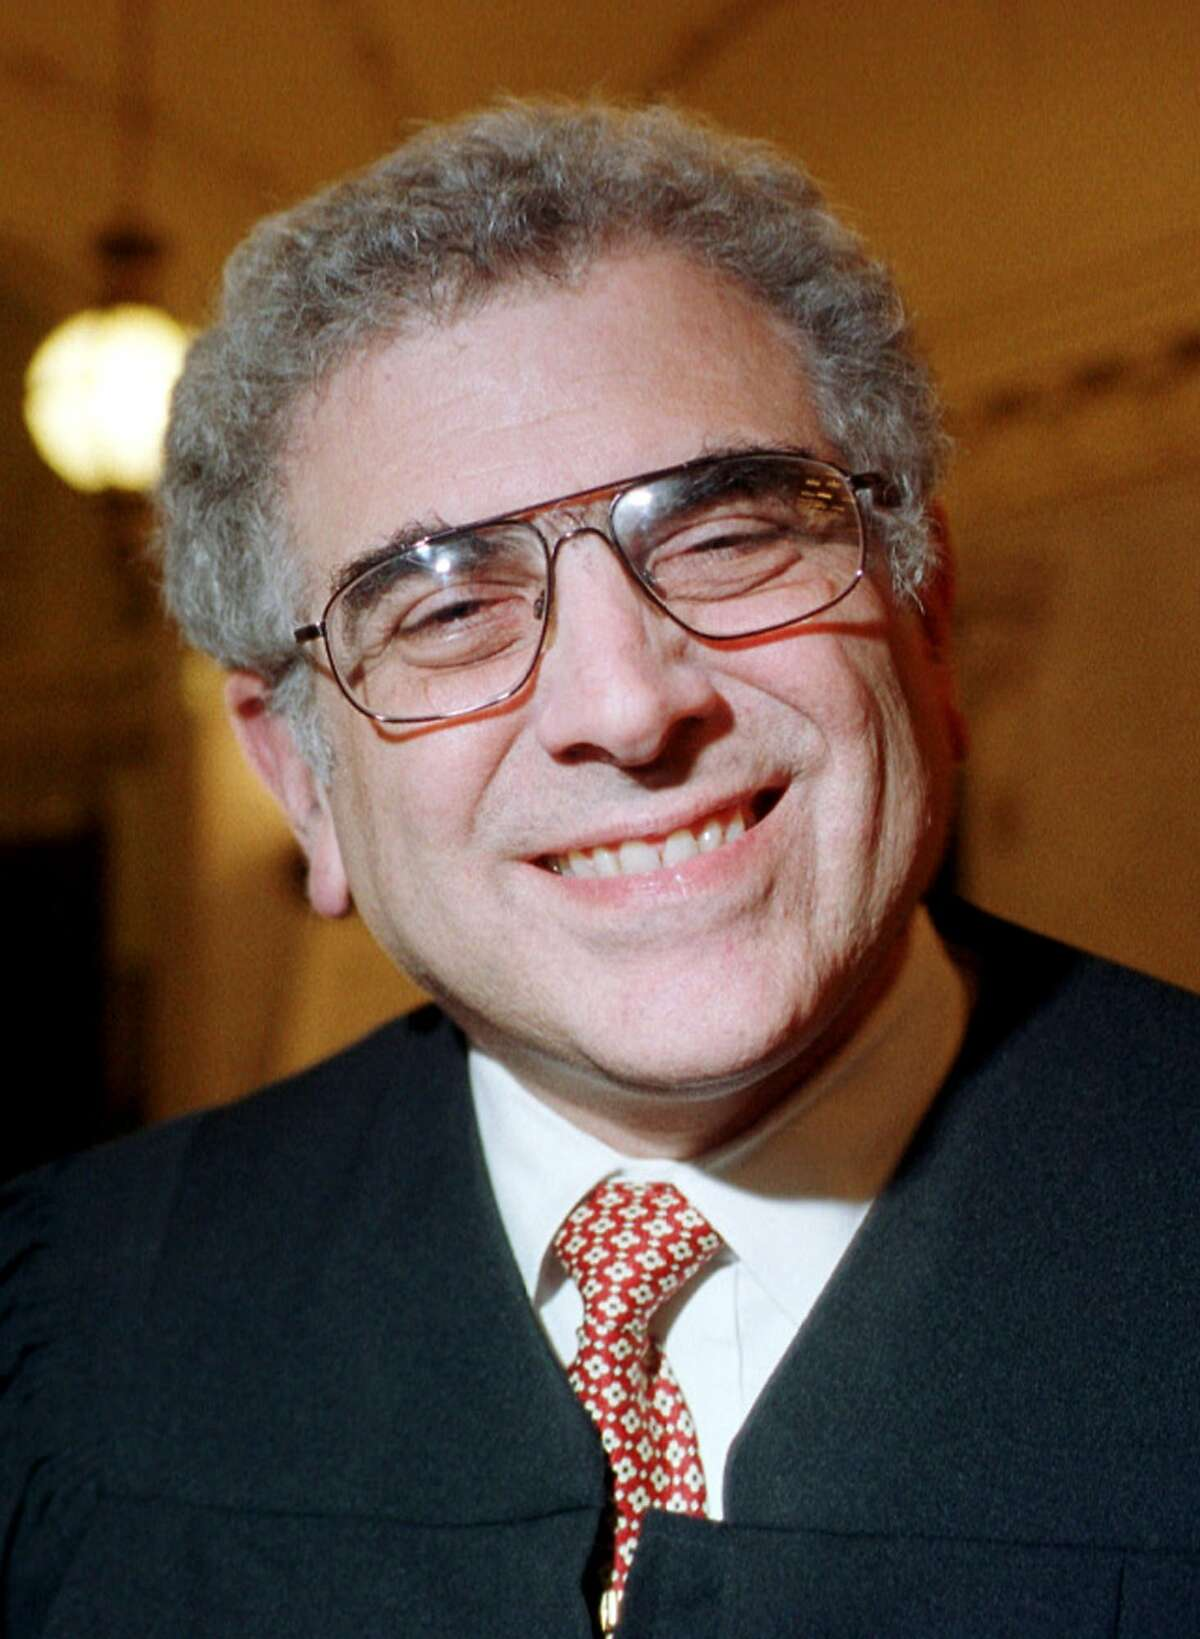 ** FILE ** Judge Andrew J. Kleinfeld of the 9th U.S. Circuit Court of Appeals is shown in a 2000 photo. The judges will hear arguments in the case that postponed the California gubernatorial recall election. (AP Photo/The Recorder, Shelley Eades)